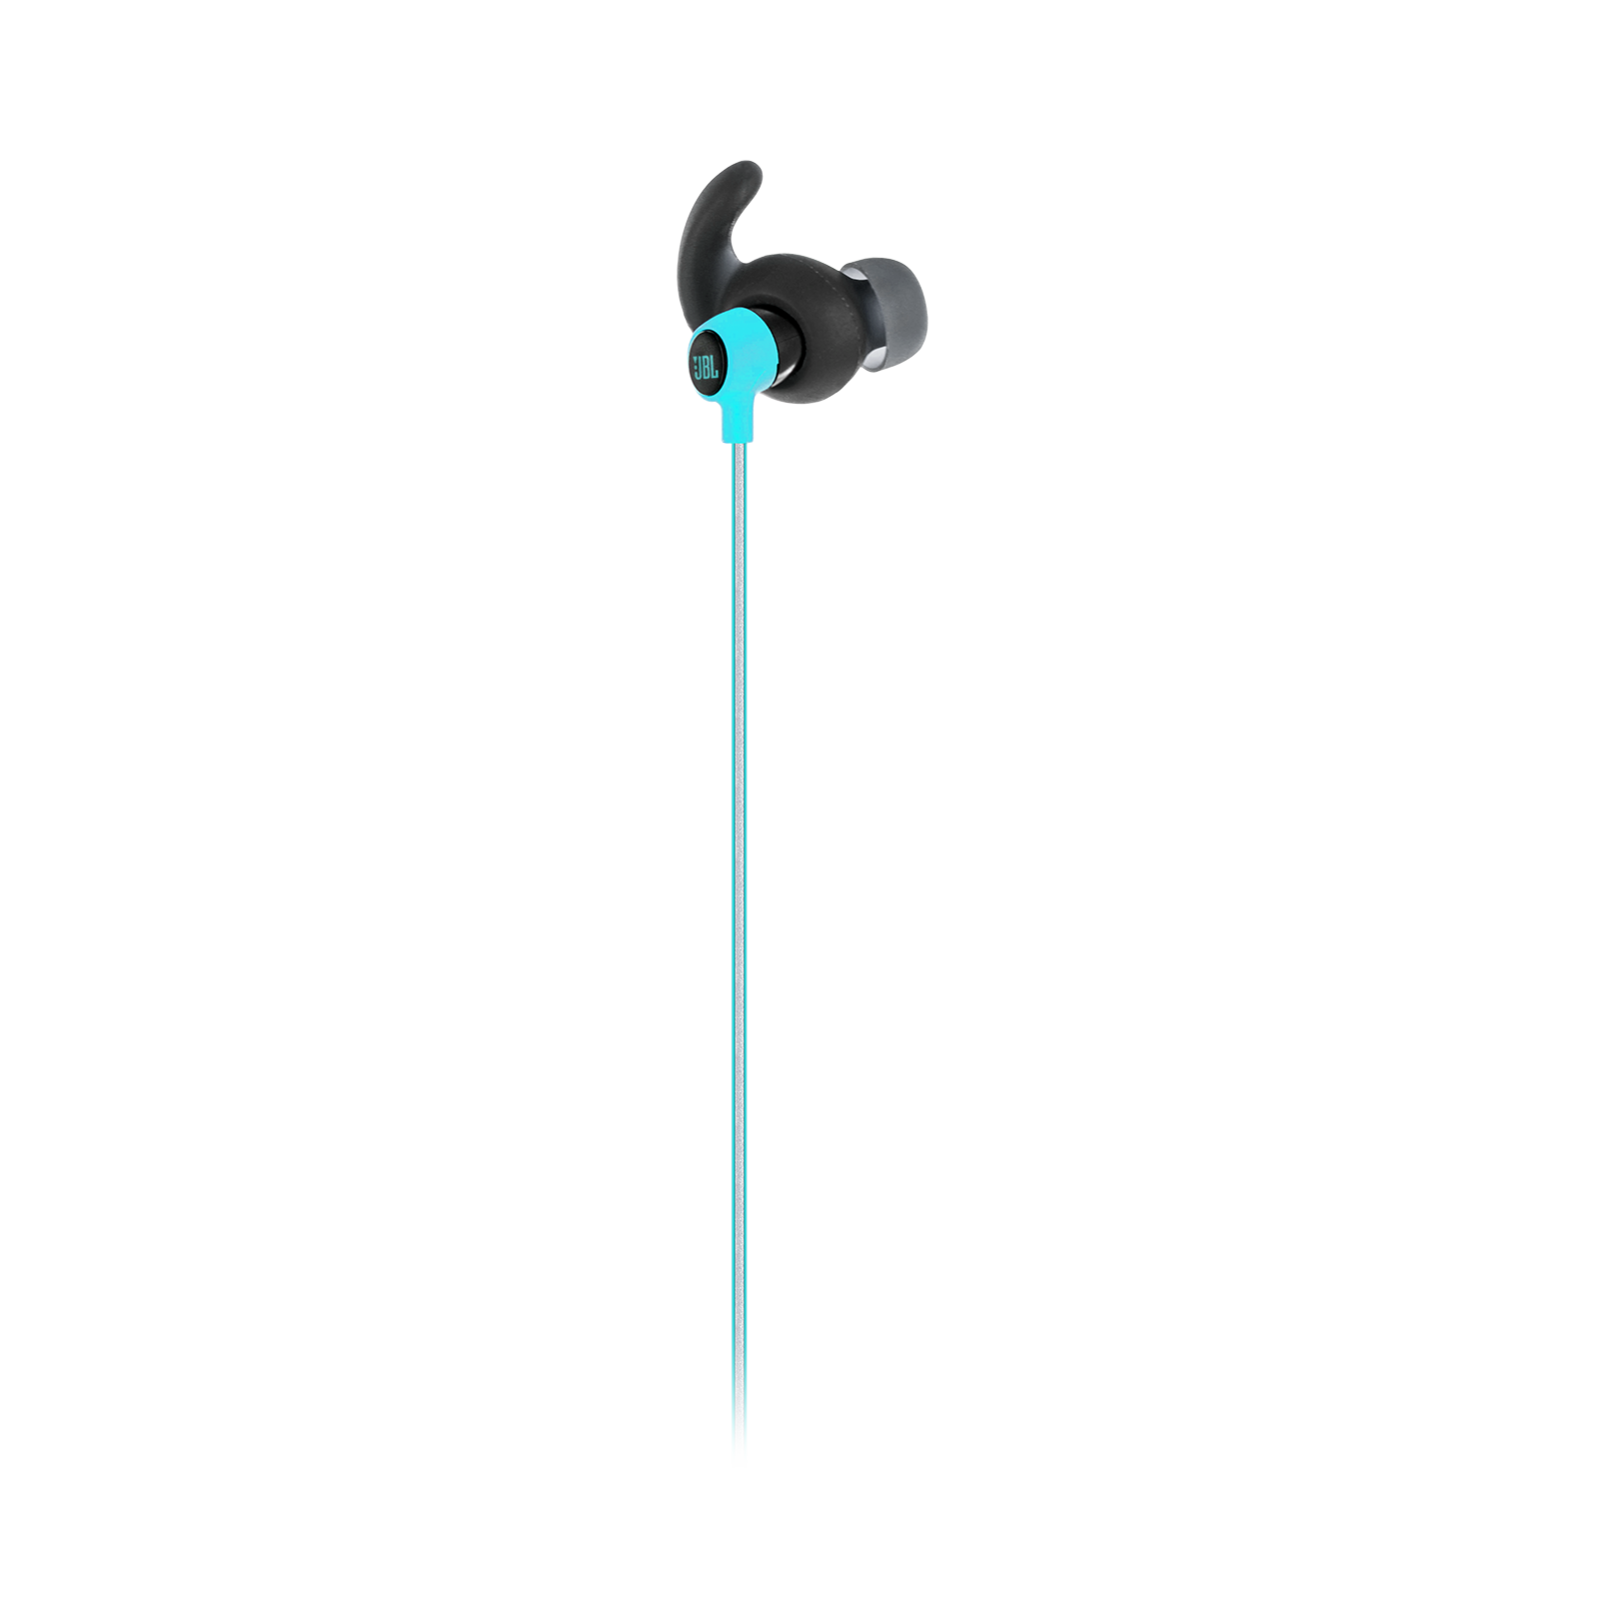 Reflect Mini - Teal - Lightweight, in-ear sport headphones - Detailshot 10